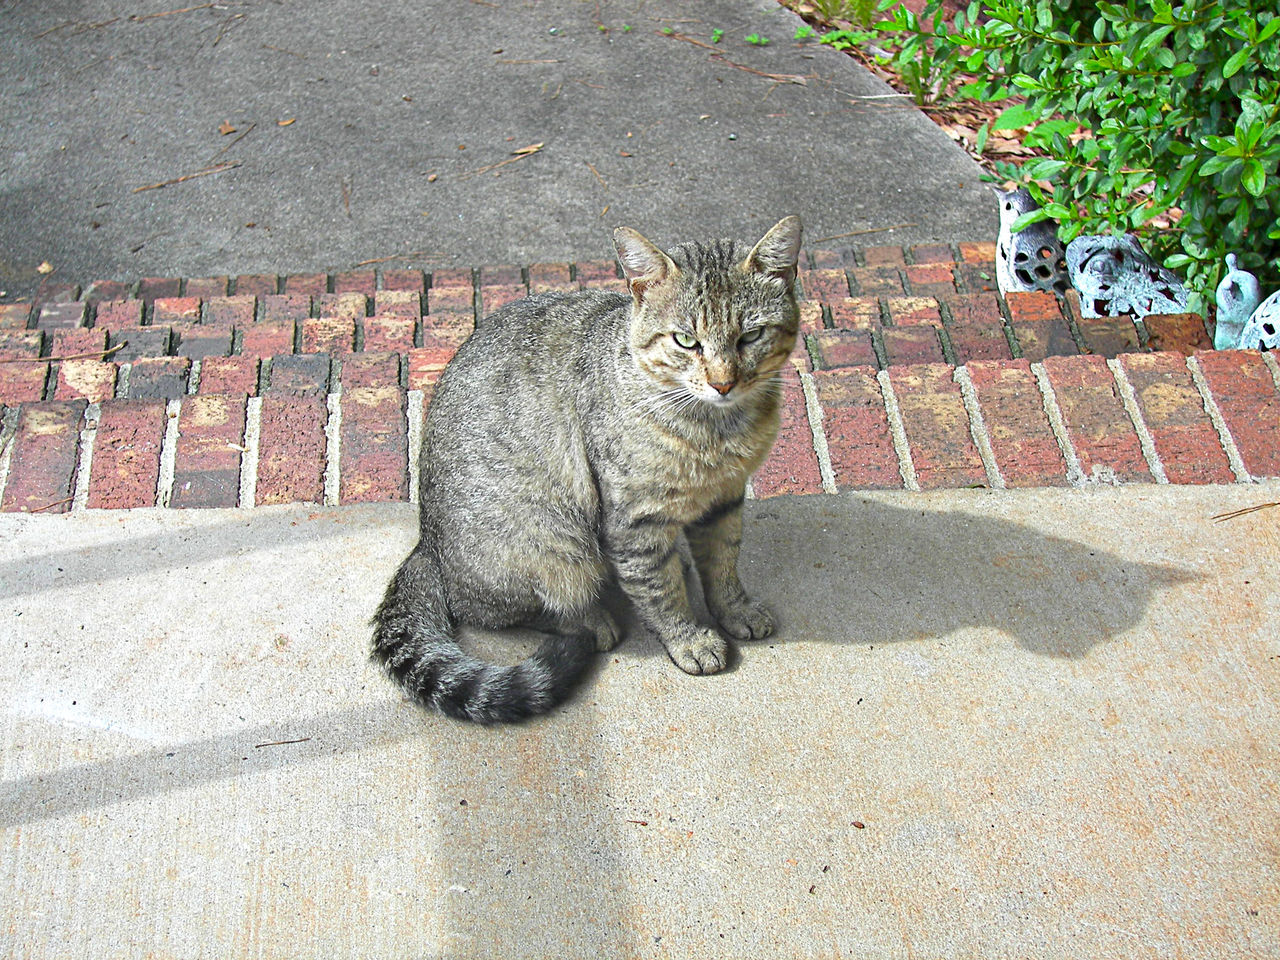 Animal Themes Day Domestic Animals Domestic Cat Feline Full Length High Angle View Looking At Camera Mammal No People One Animal Outdoors Pets Portrait Sitting Street